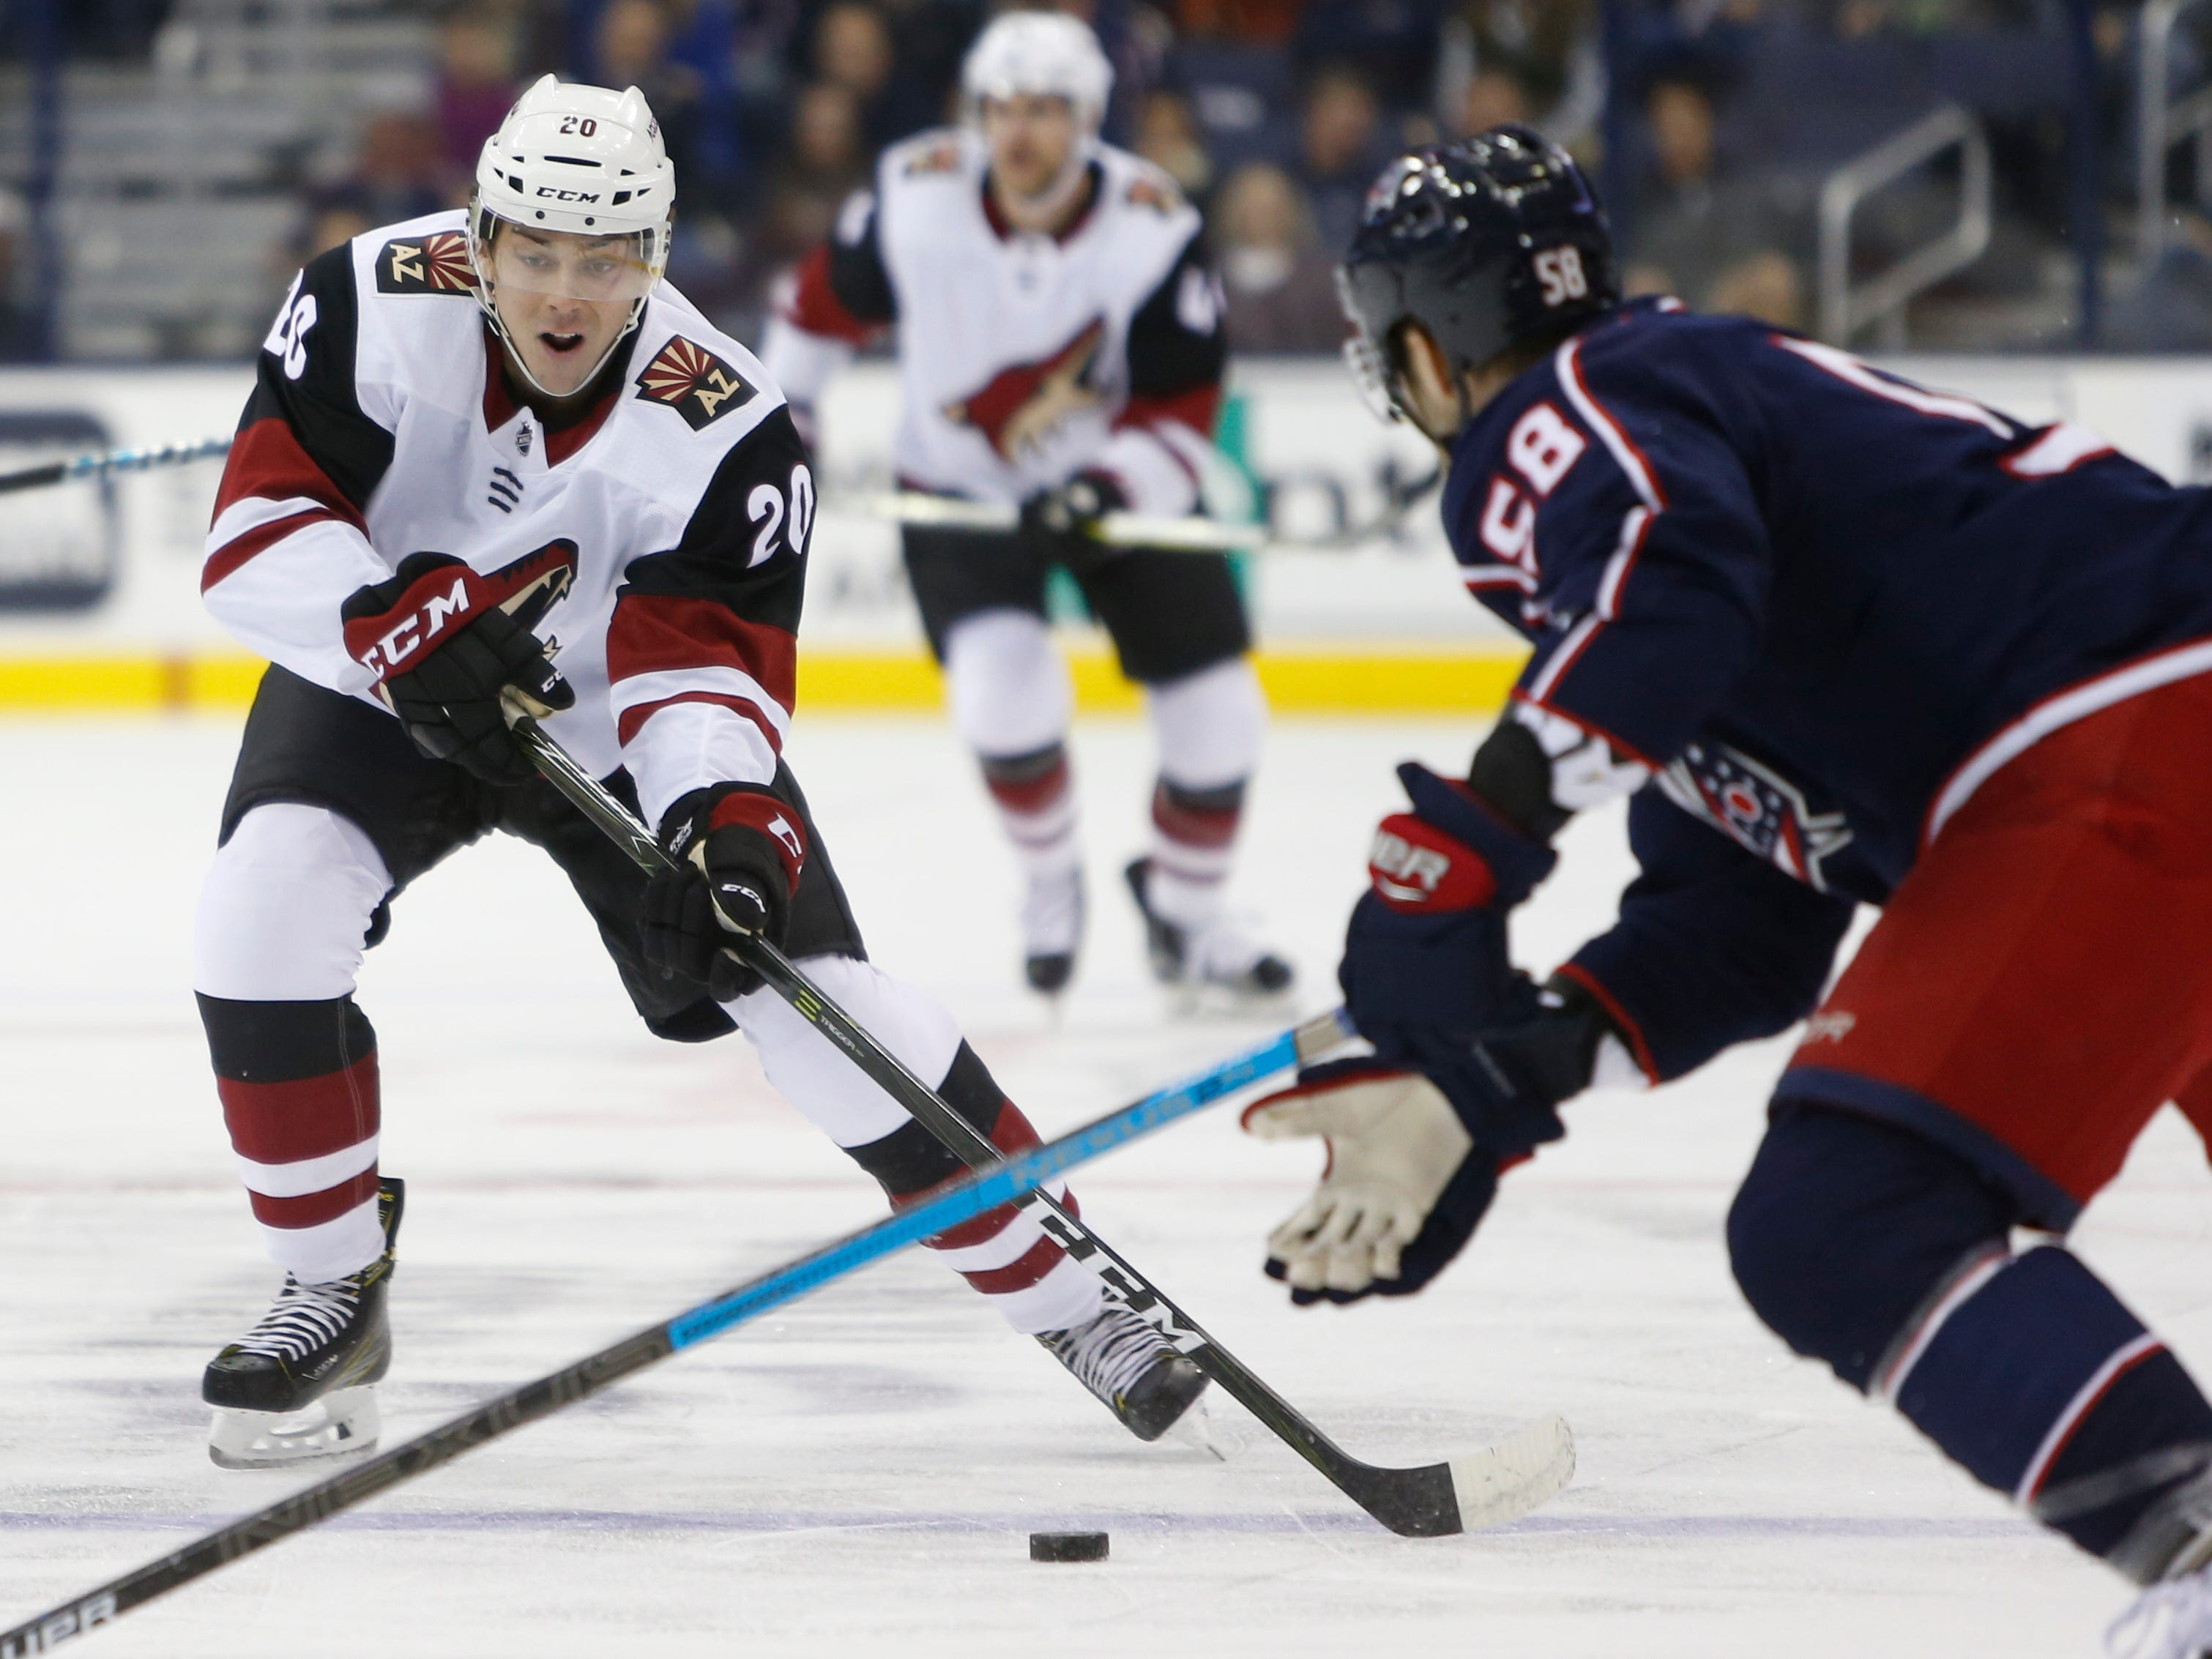 Arizona Coyotes' Dylan Strome, left, carries the puck across the blue line as Columbus Blue Jackets' David Savard defends during the first period of an NHL hockey game Tuesday, Oct. 23, 2018, in Columbus, Ohio.